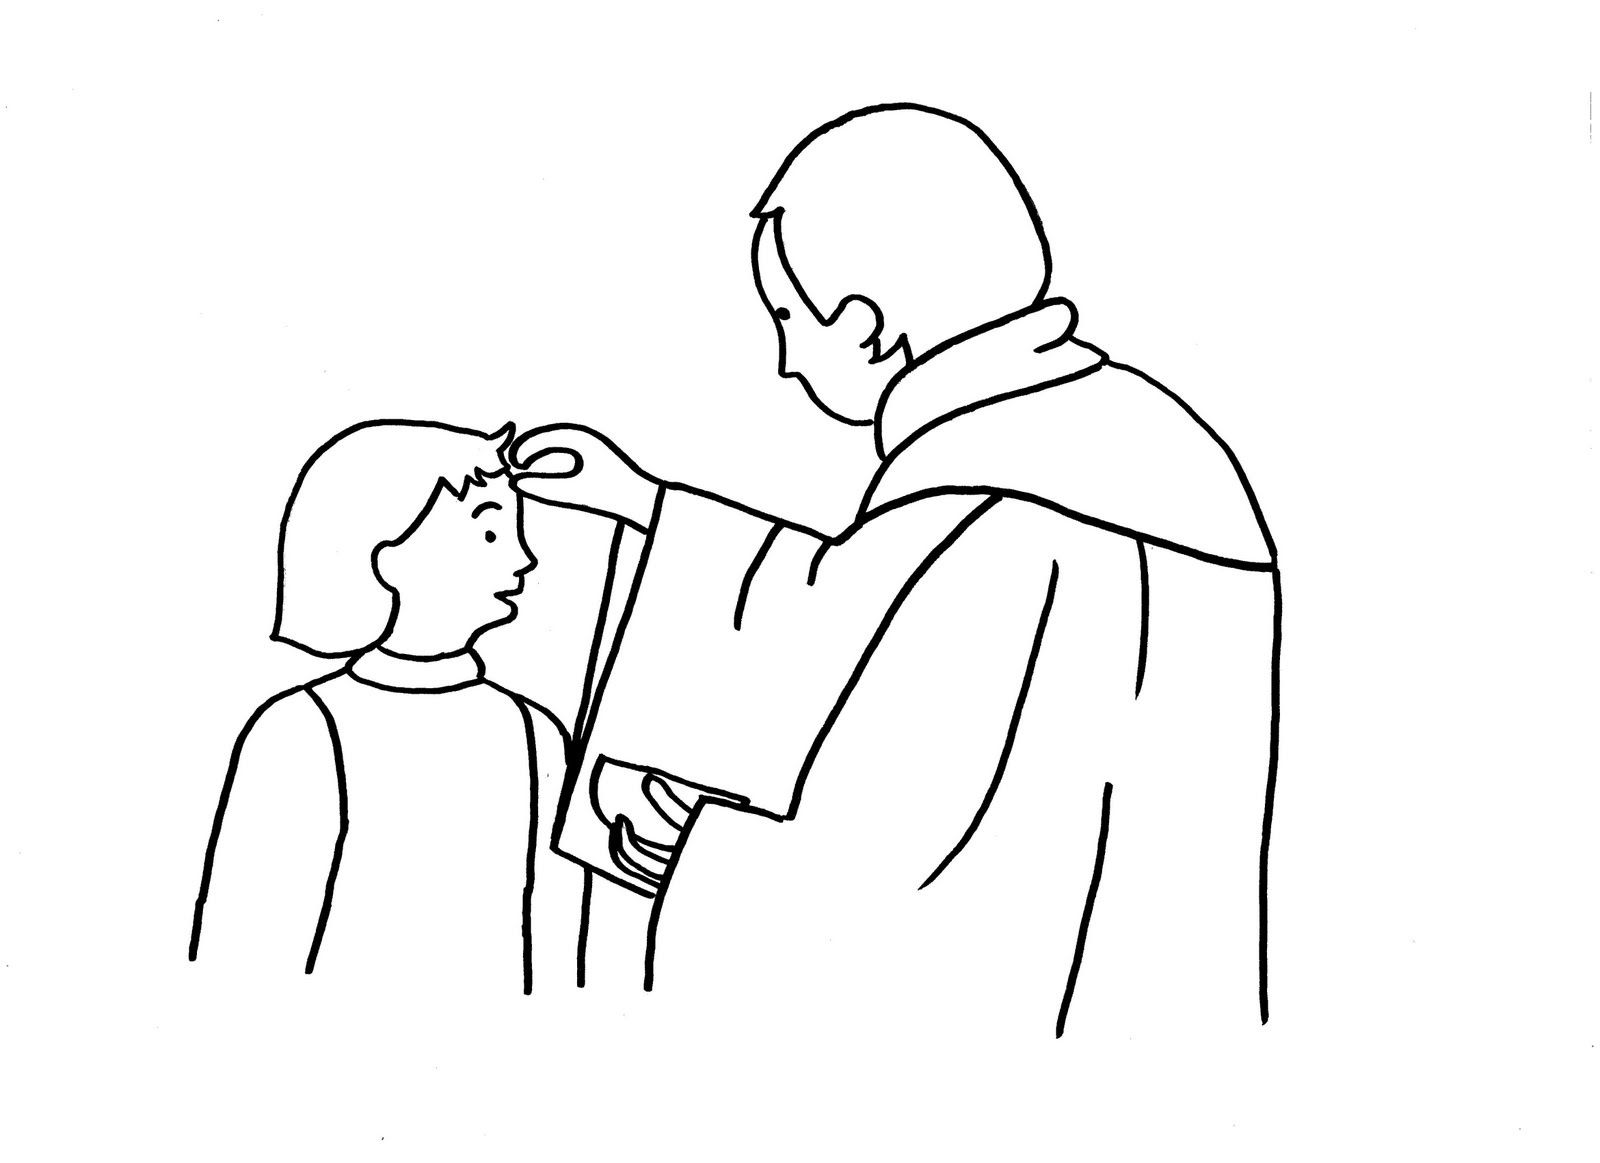 cendre coloring pages - photo#1